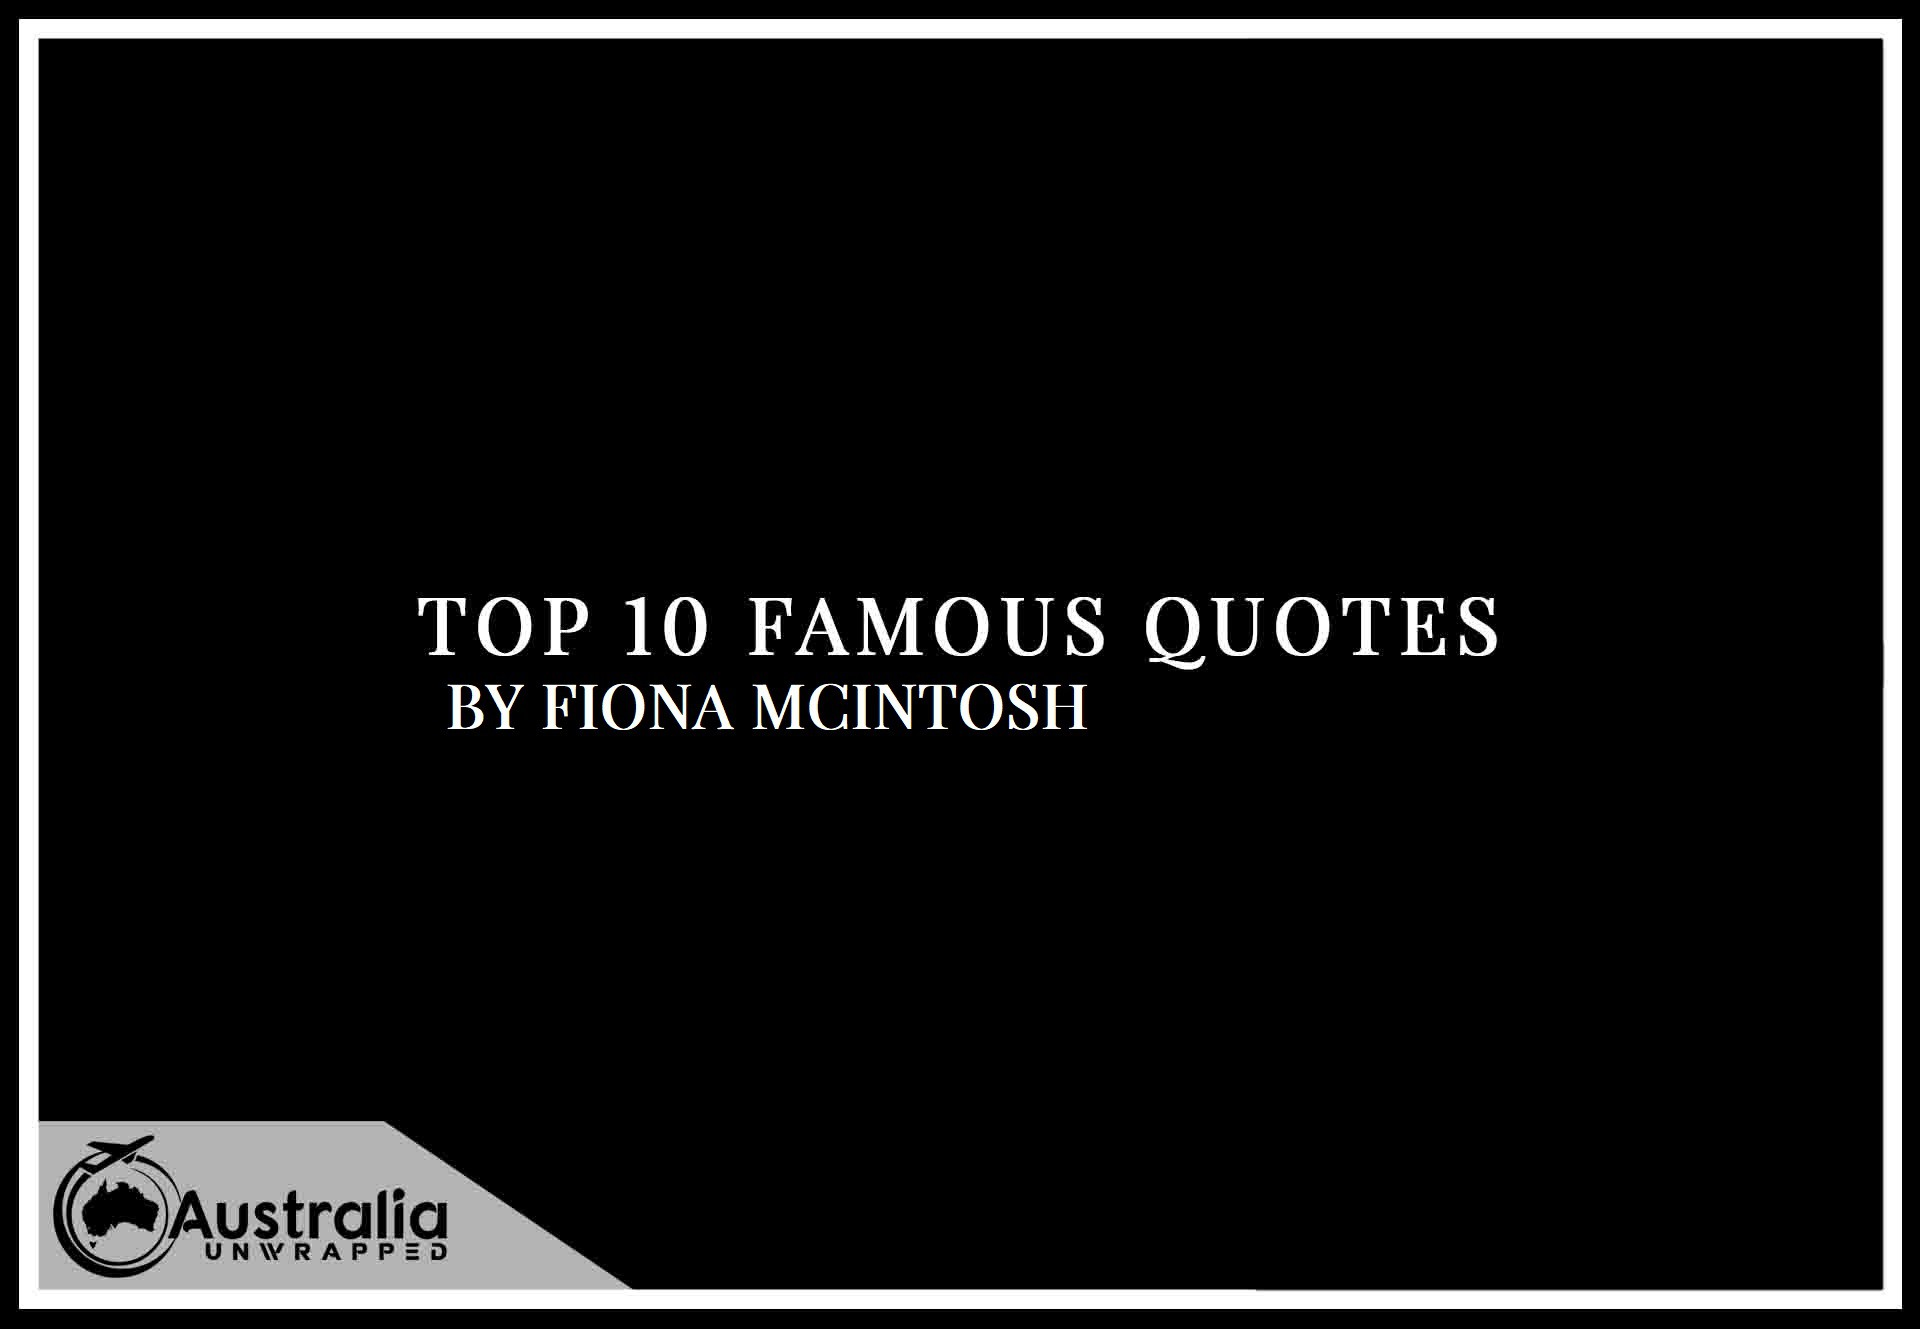 Top 10 Famous Quotes by Author Fiona McIntosh